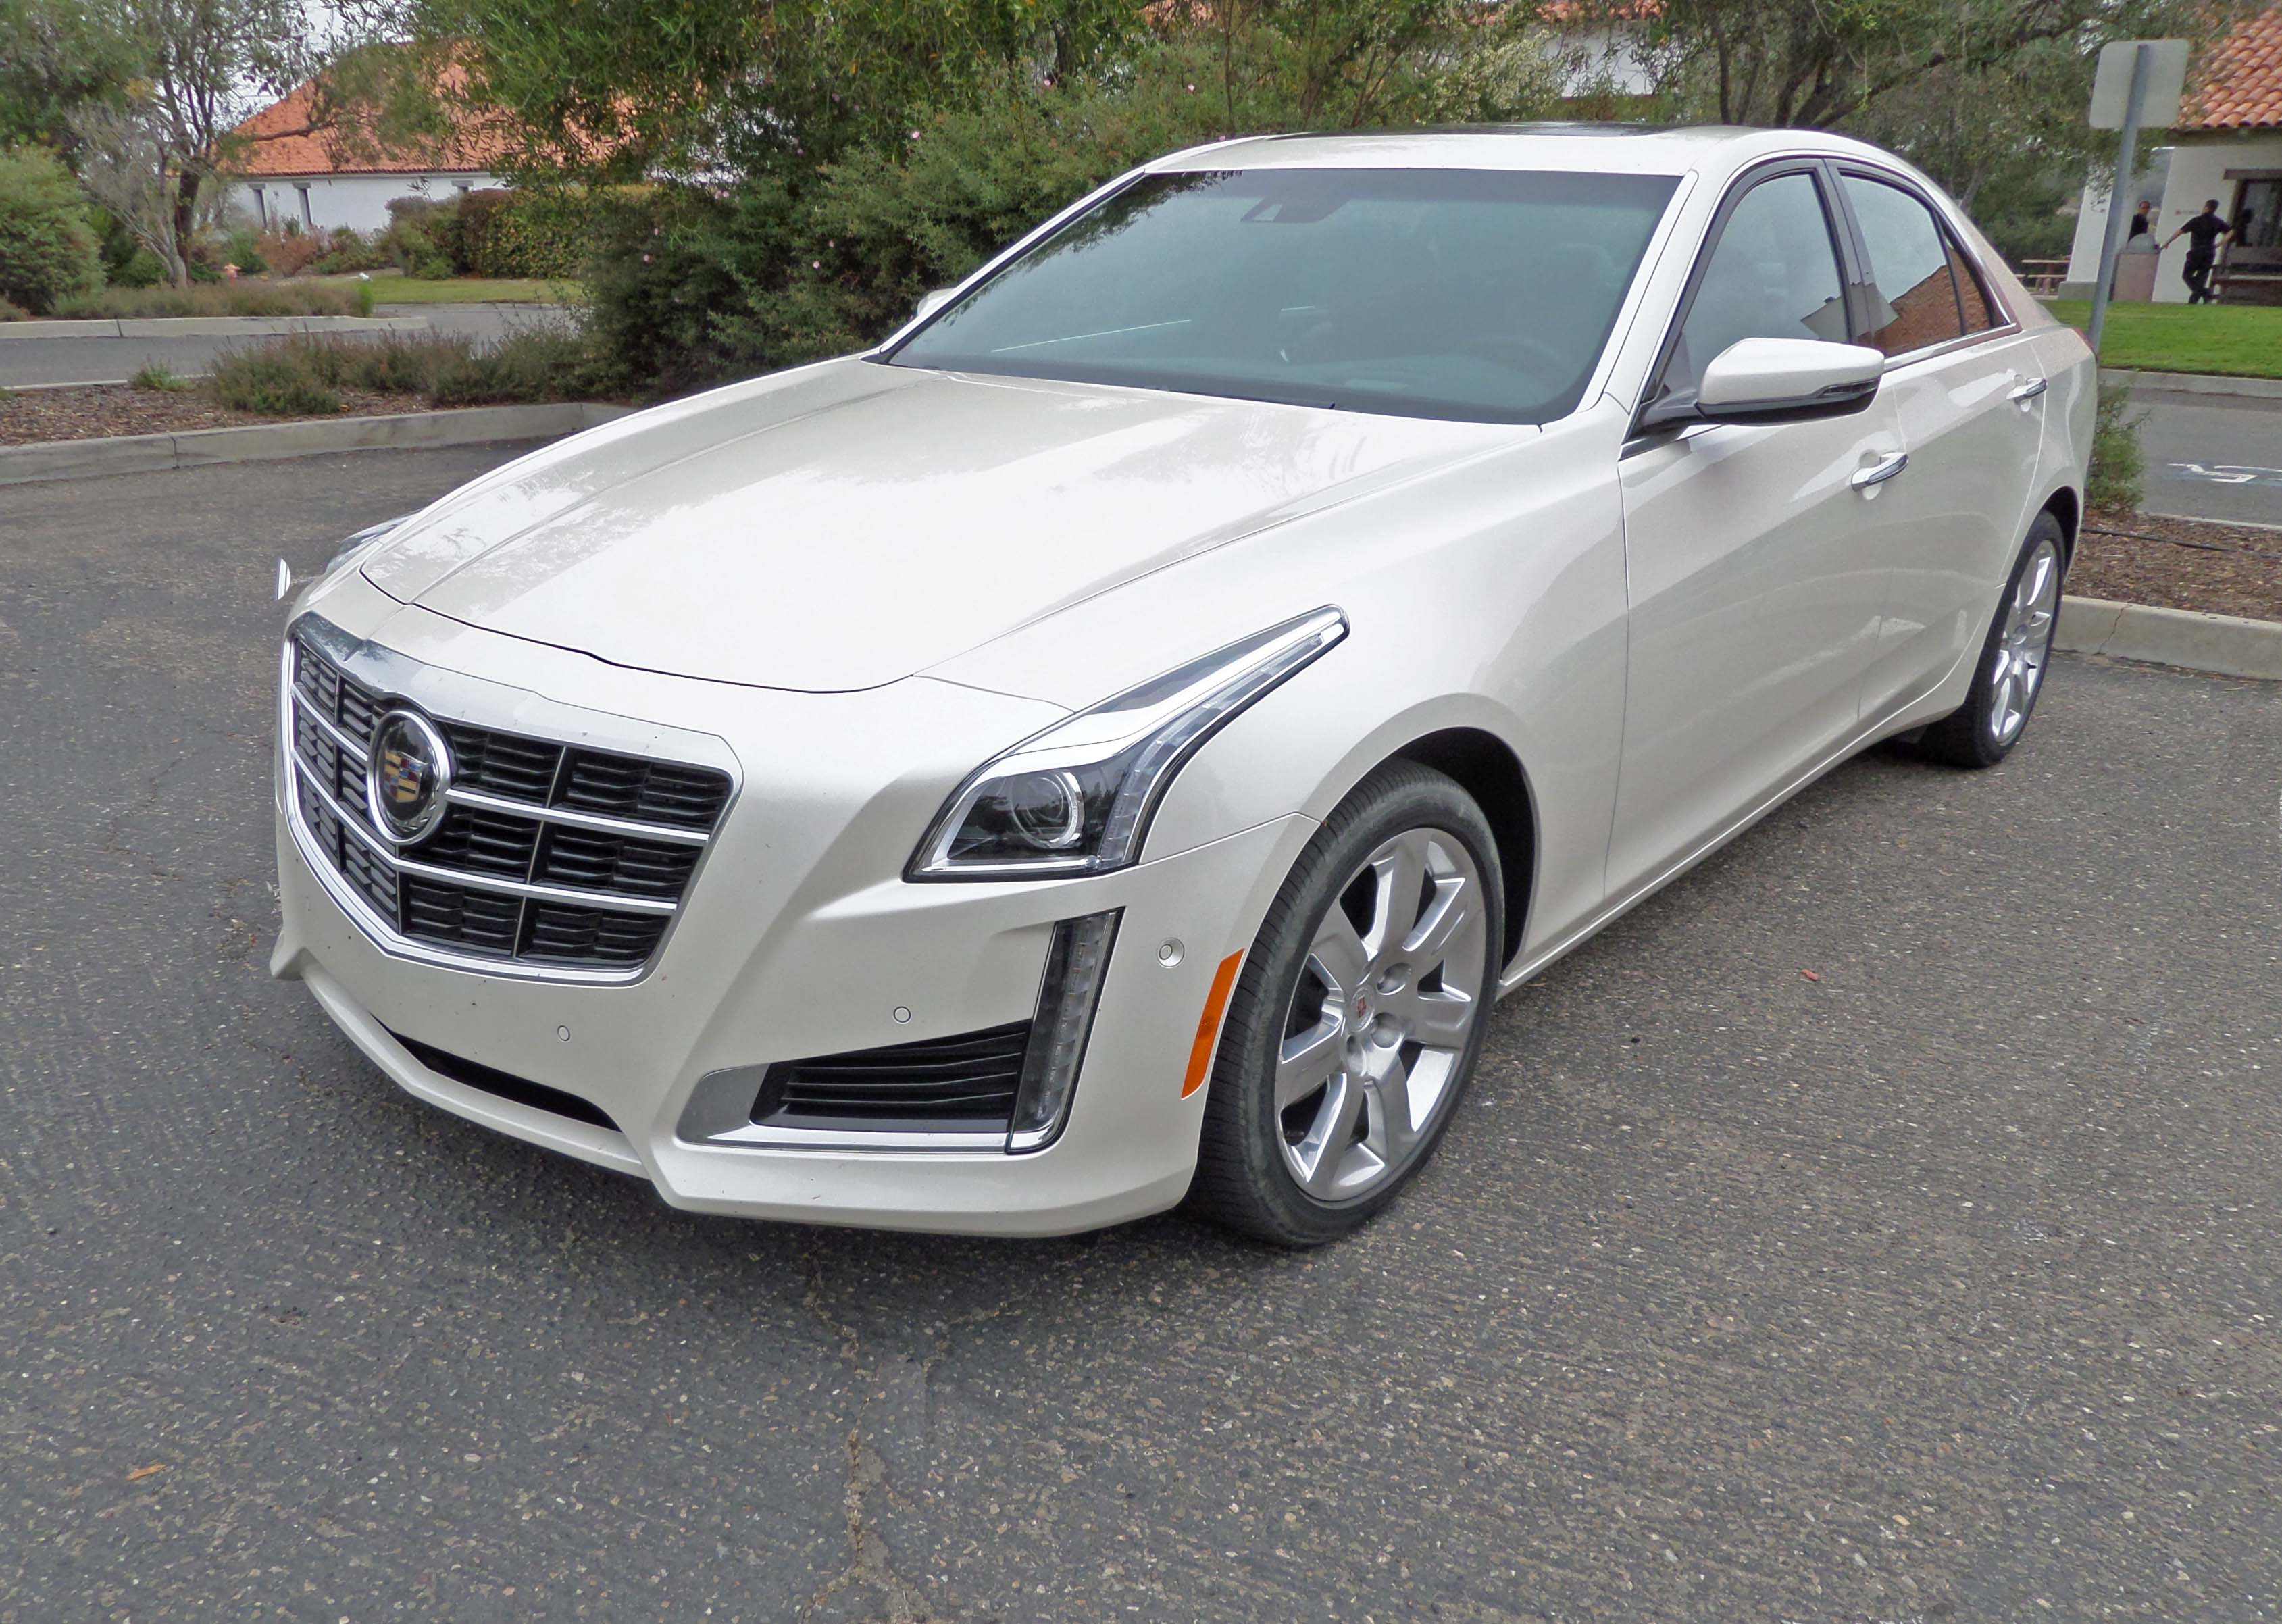 2014 cadillac cts vsport sedan test drive our auto expert